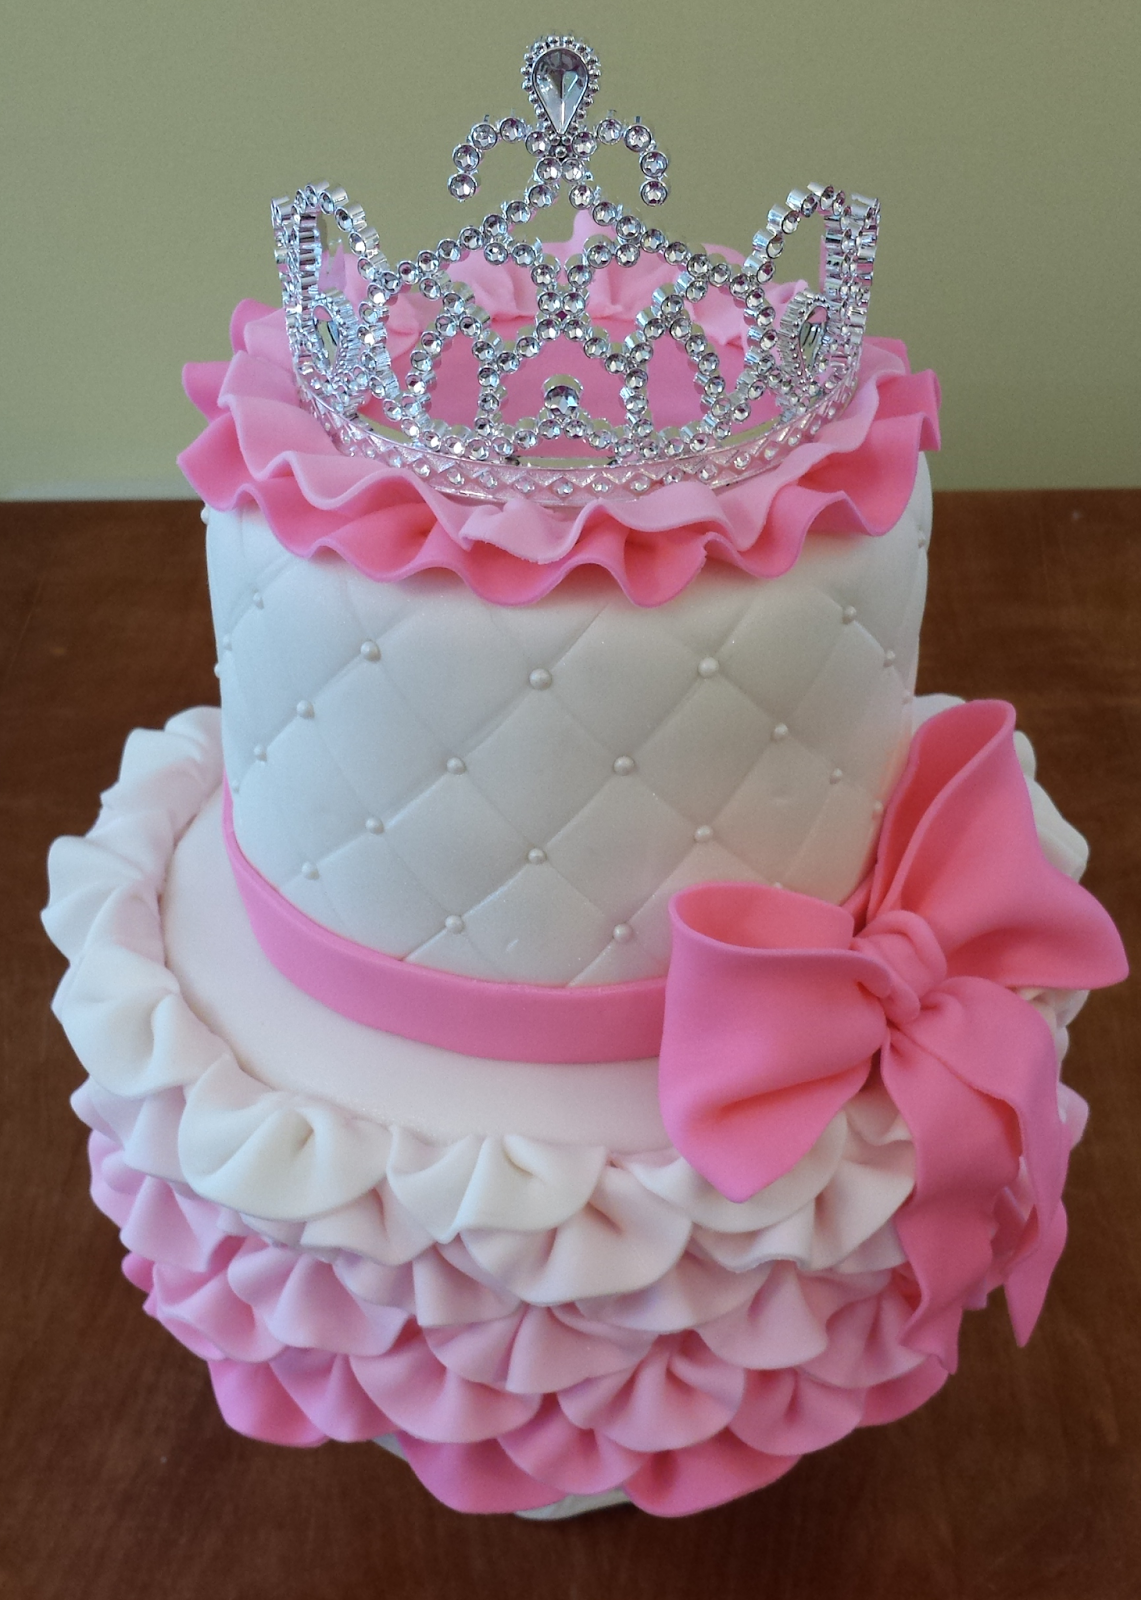 Even Though I M Not A Fan Of Fondant This Cake Is A Work